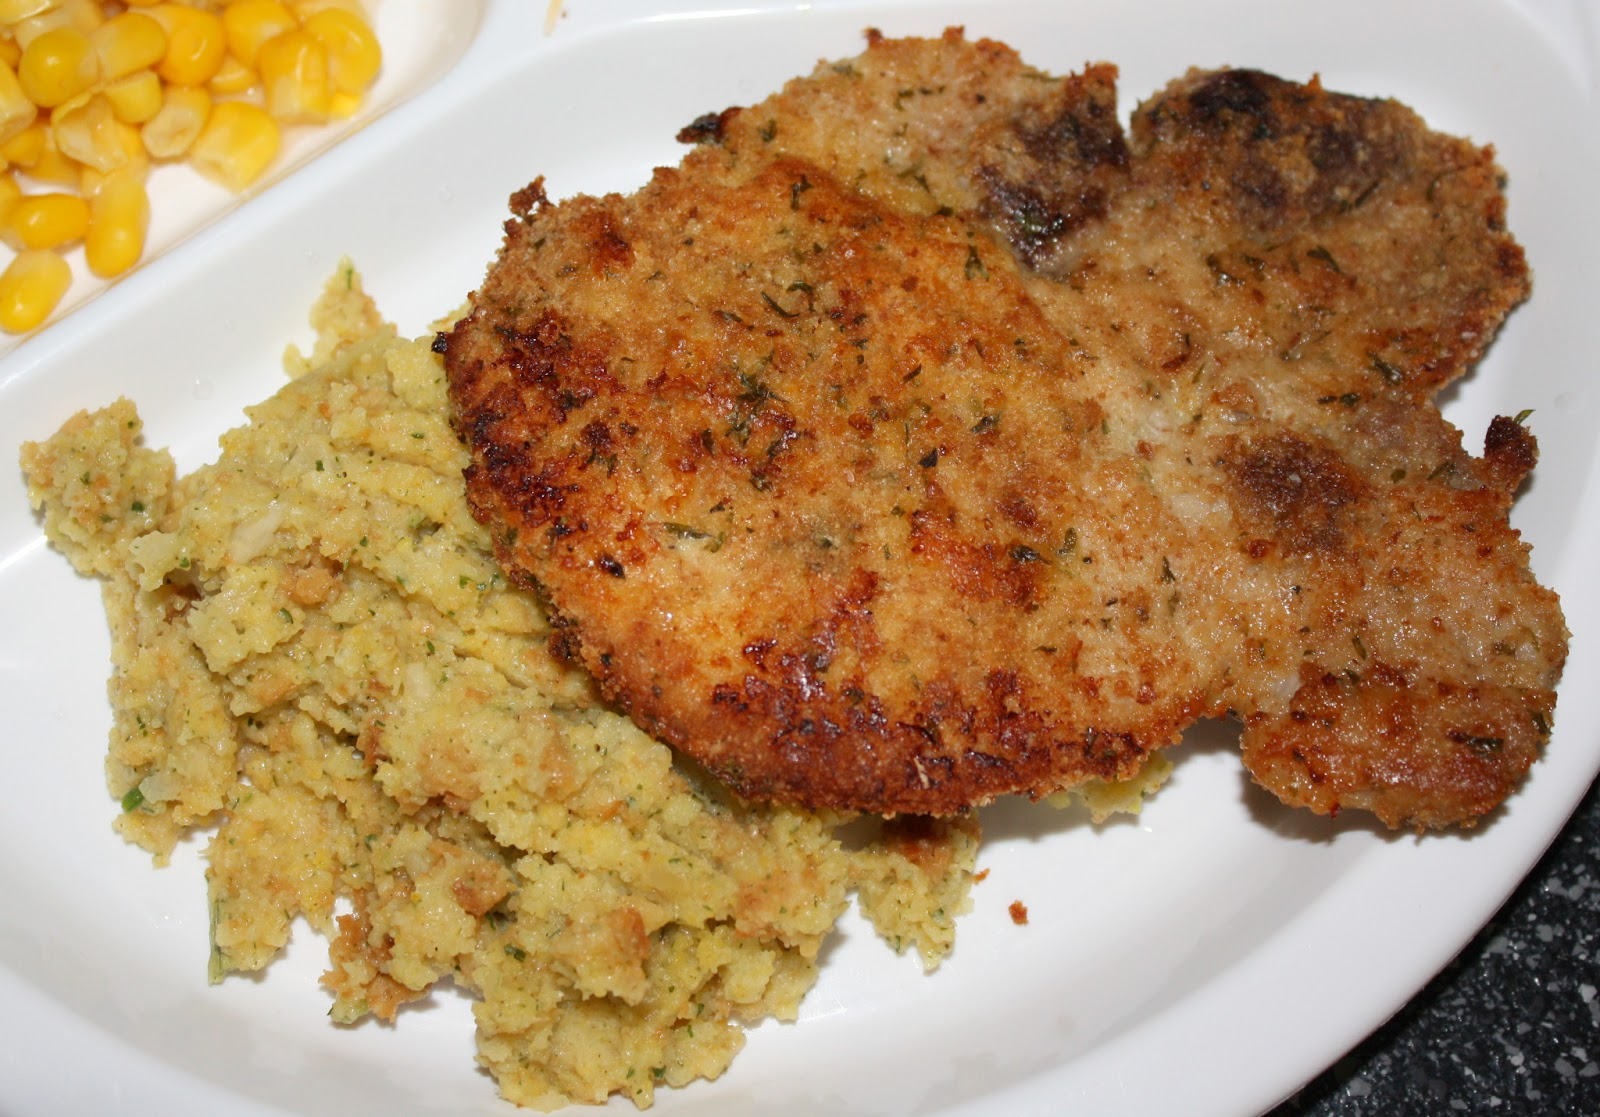 Screen Doors & Sweet Tea: Breaded Pork Chops. Dinner to Lunch